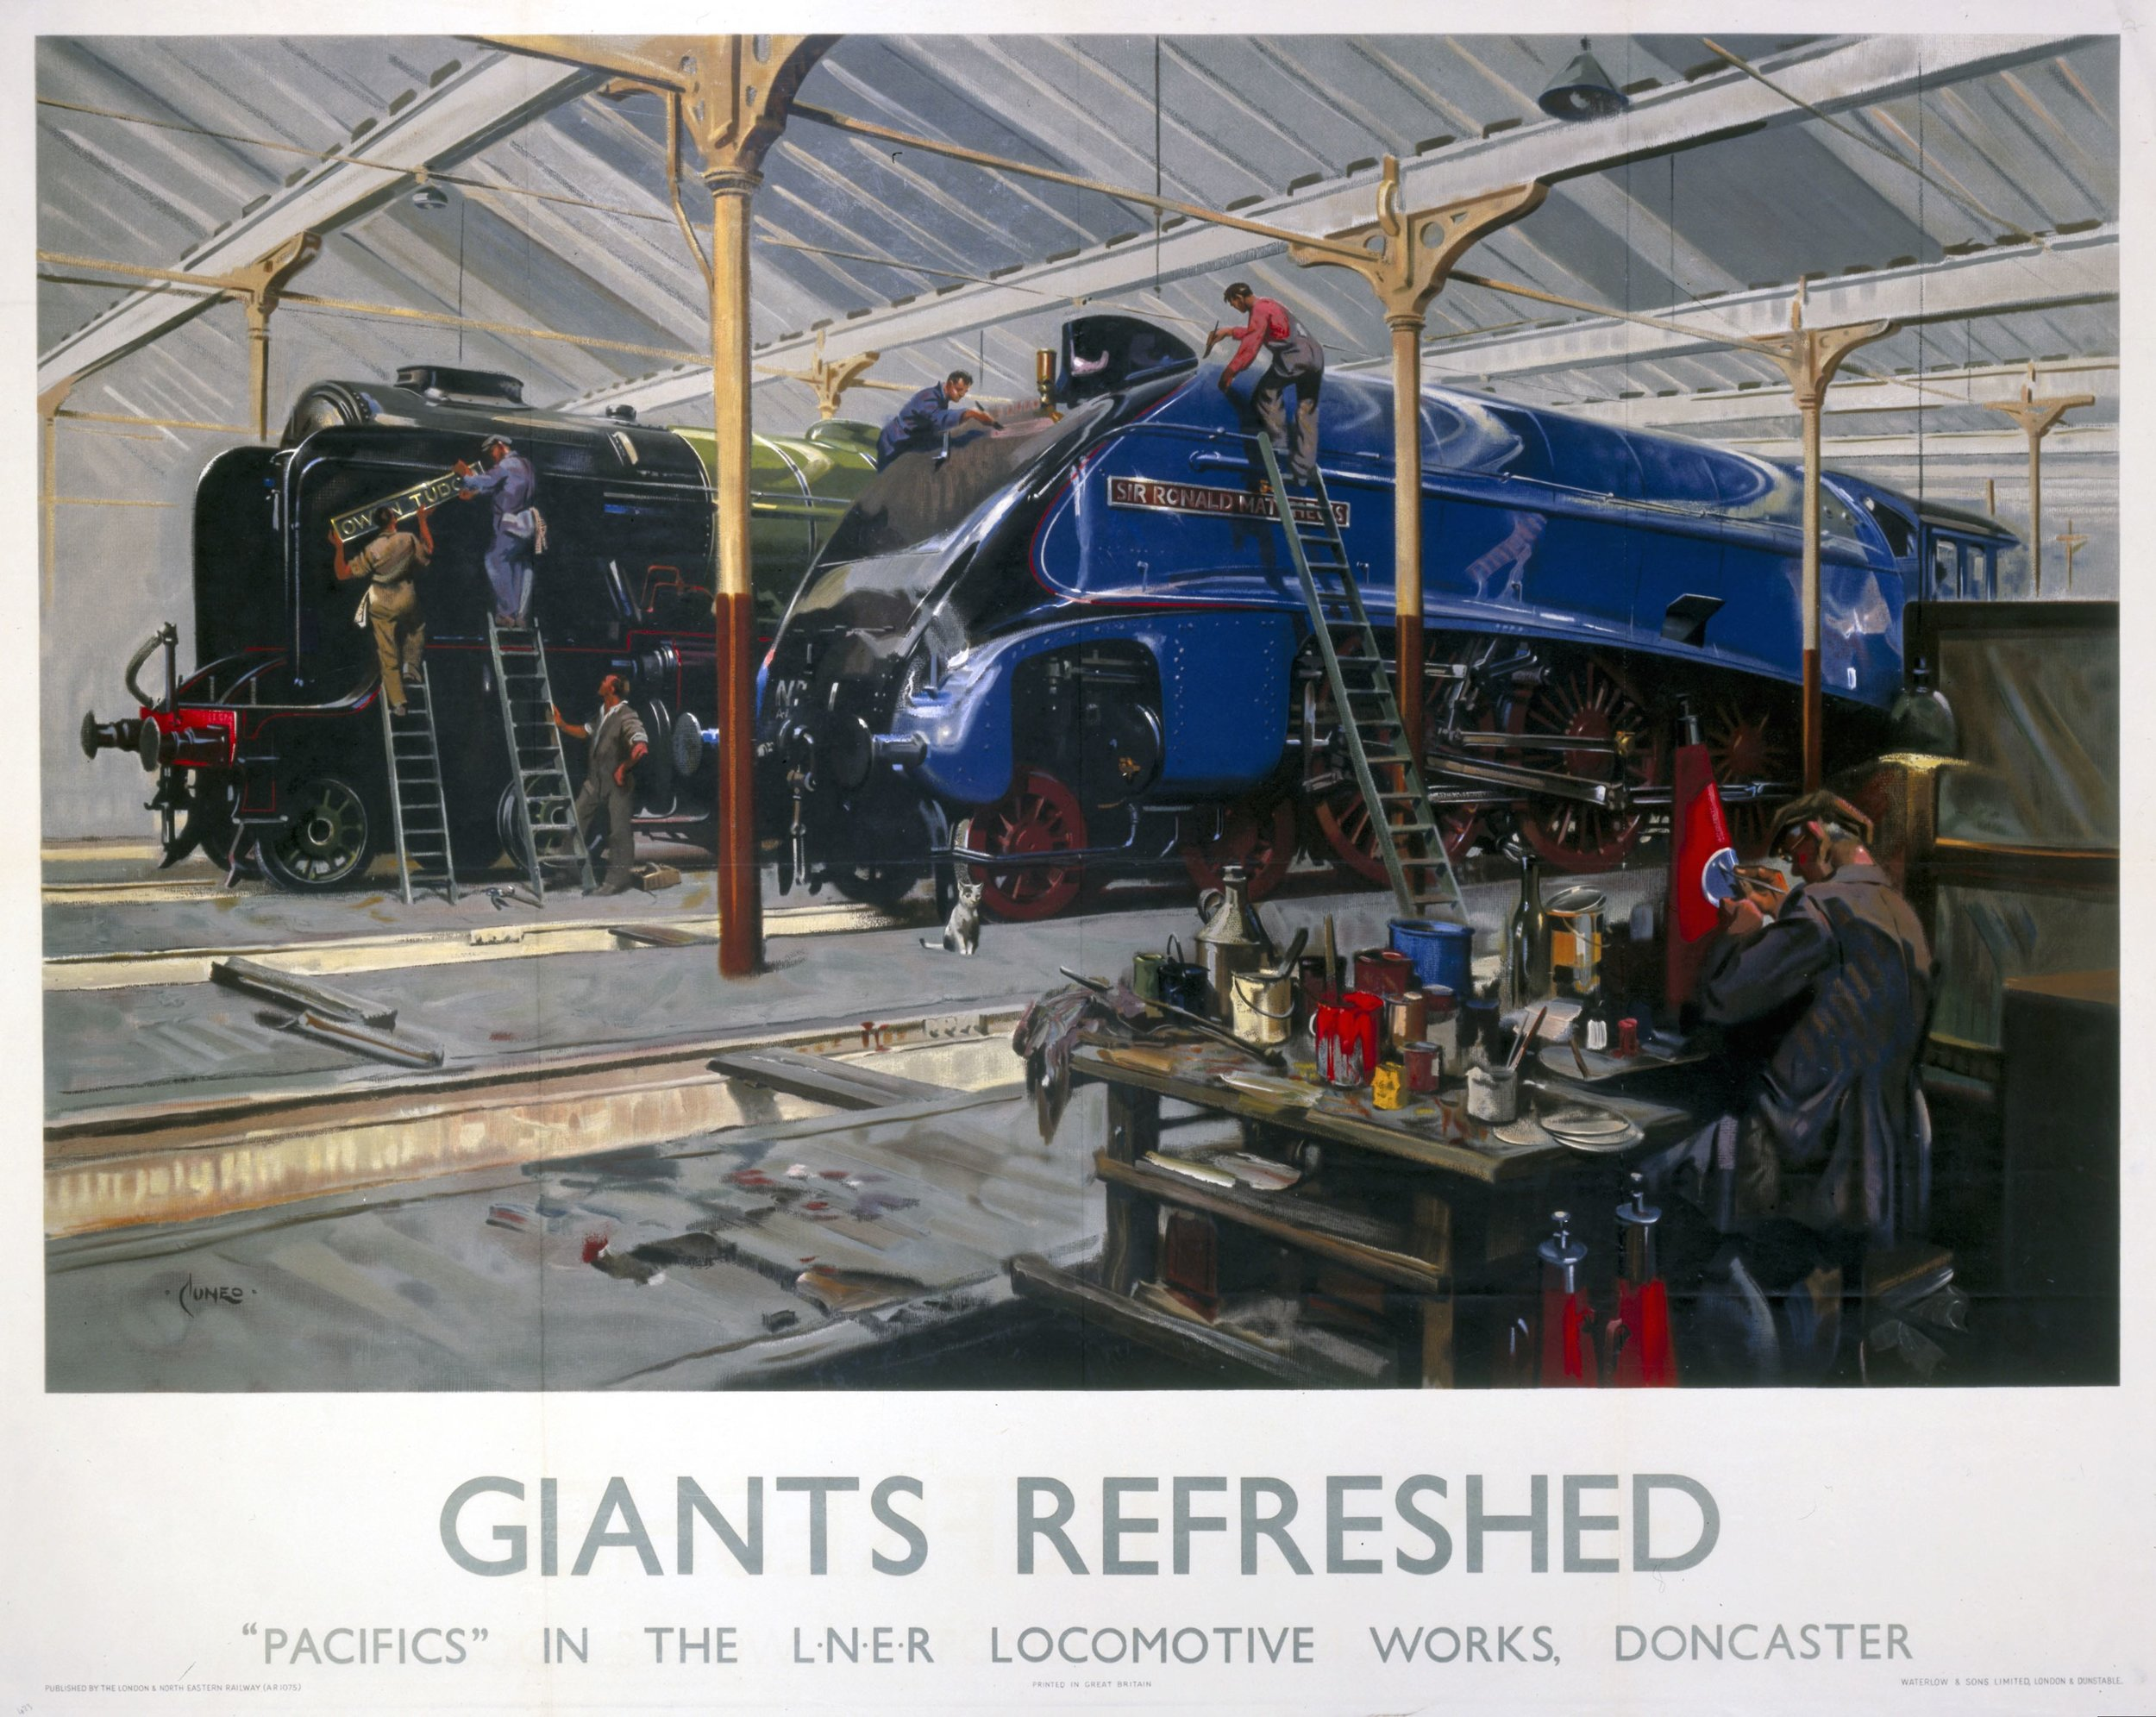 One of Terence Cuneo's most famous paintings –  Giants Refreshed  – depicting A4' No. 1  Sir Ronald Matthews  receiving the finishing touches to its garter blue livery alongside 'A2/3' No. 520  Owen Tudor . NRM/ESTATE OF TERENCE CUNEO/BRIDGEMAN IMAGES